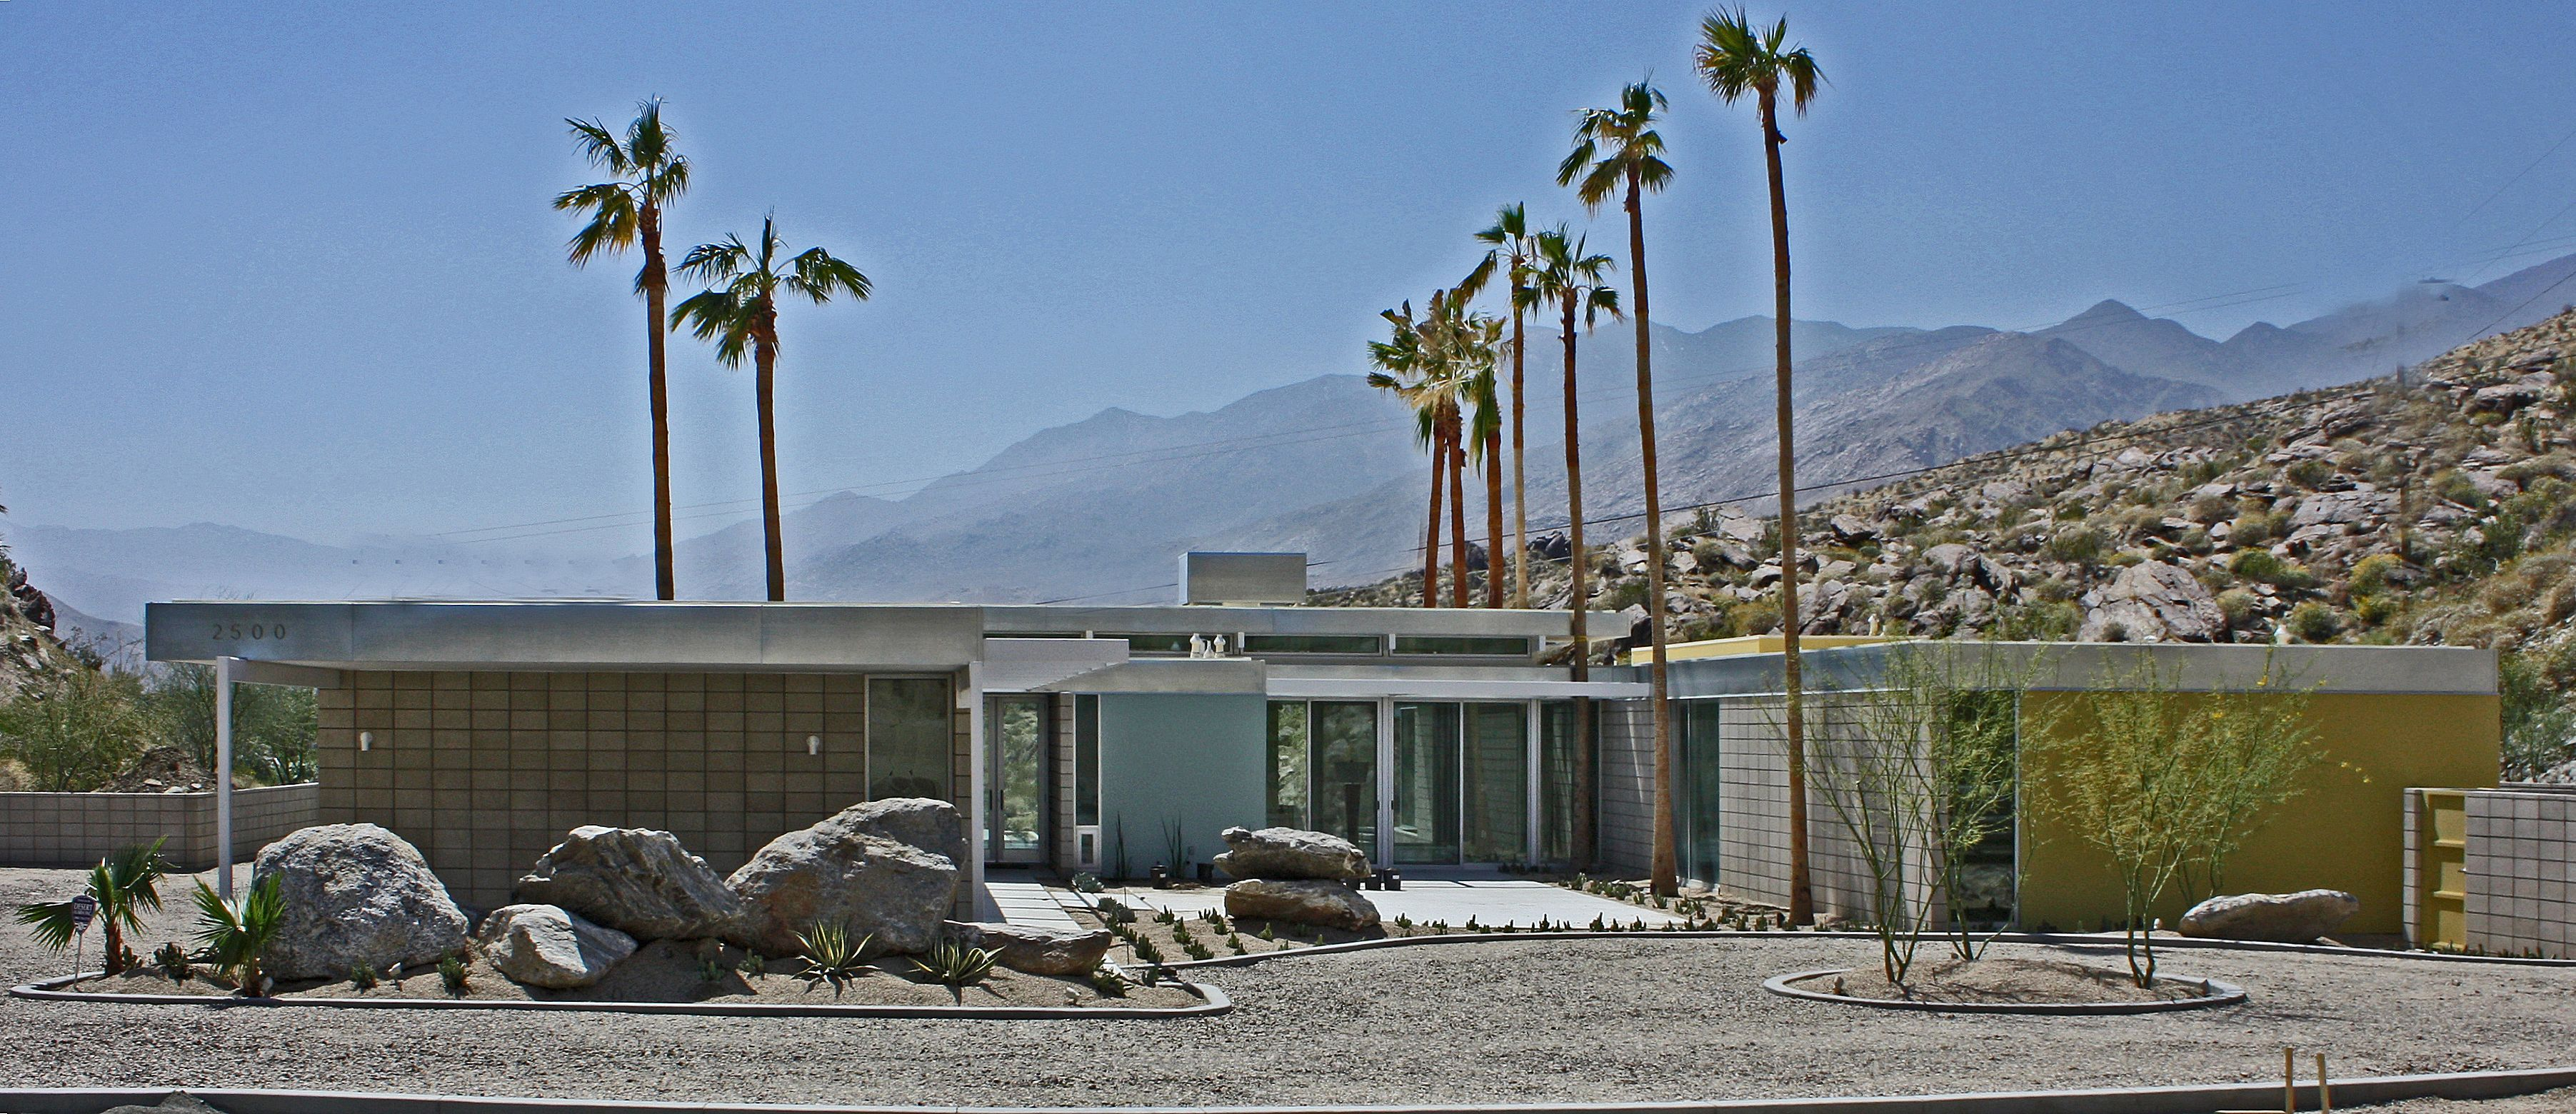 FRONT HOME modern home palm springs desert landscape round pool